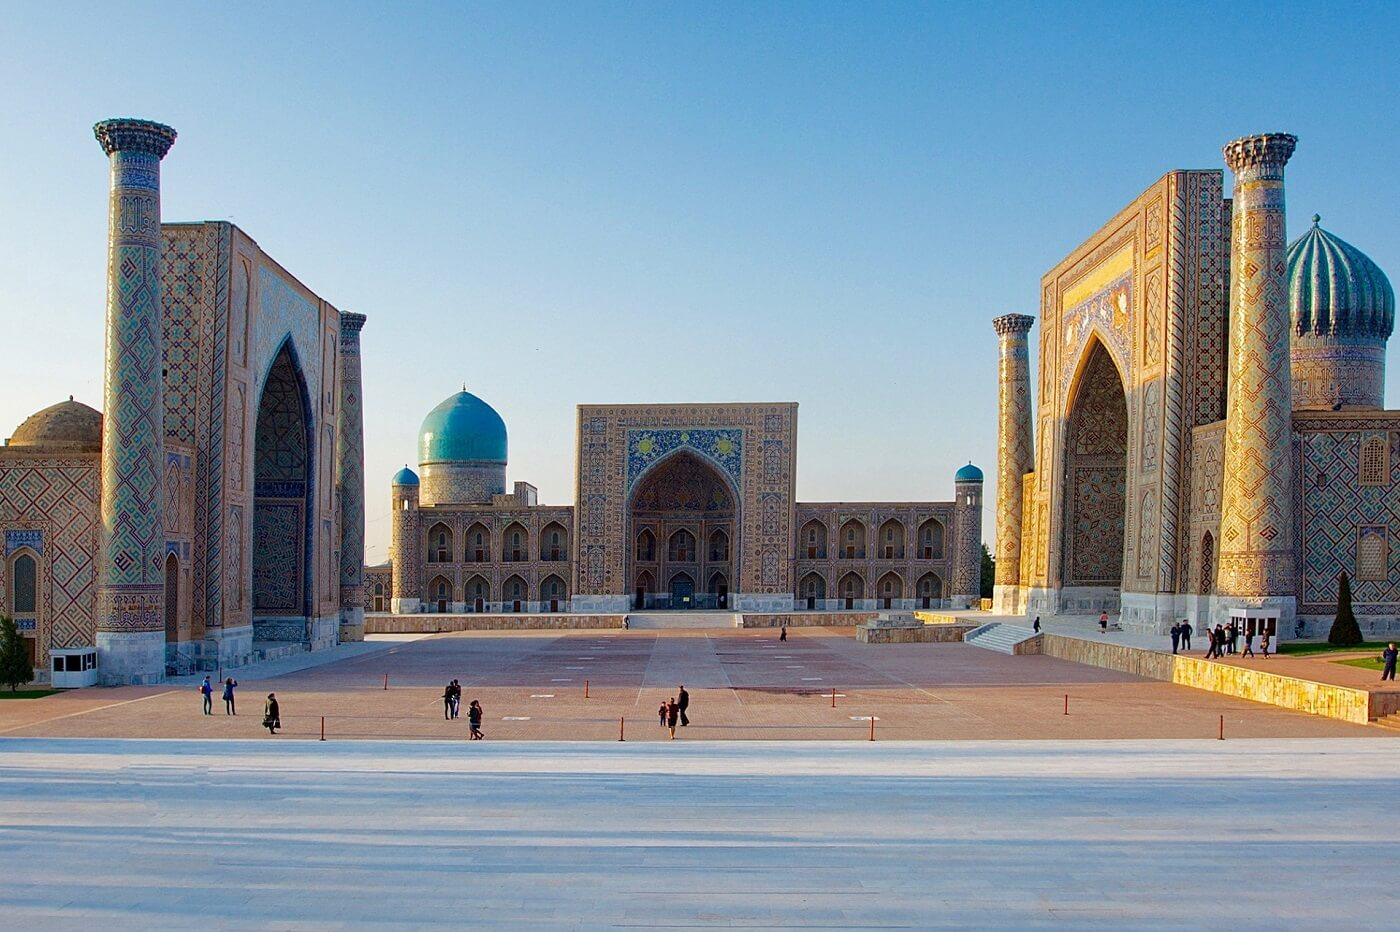 Central Asia Tours